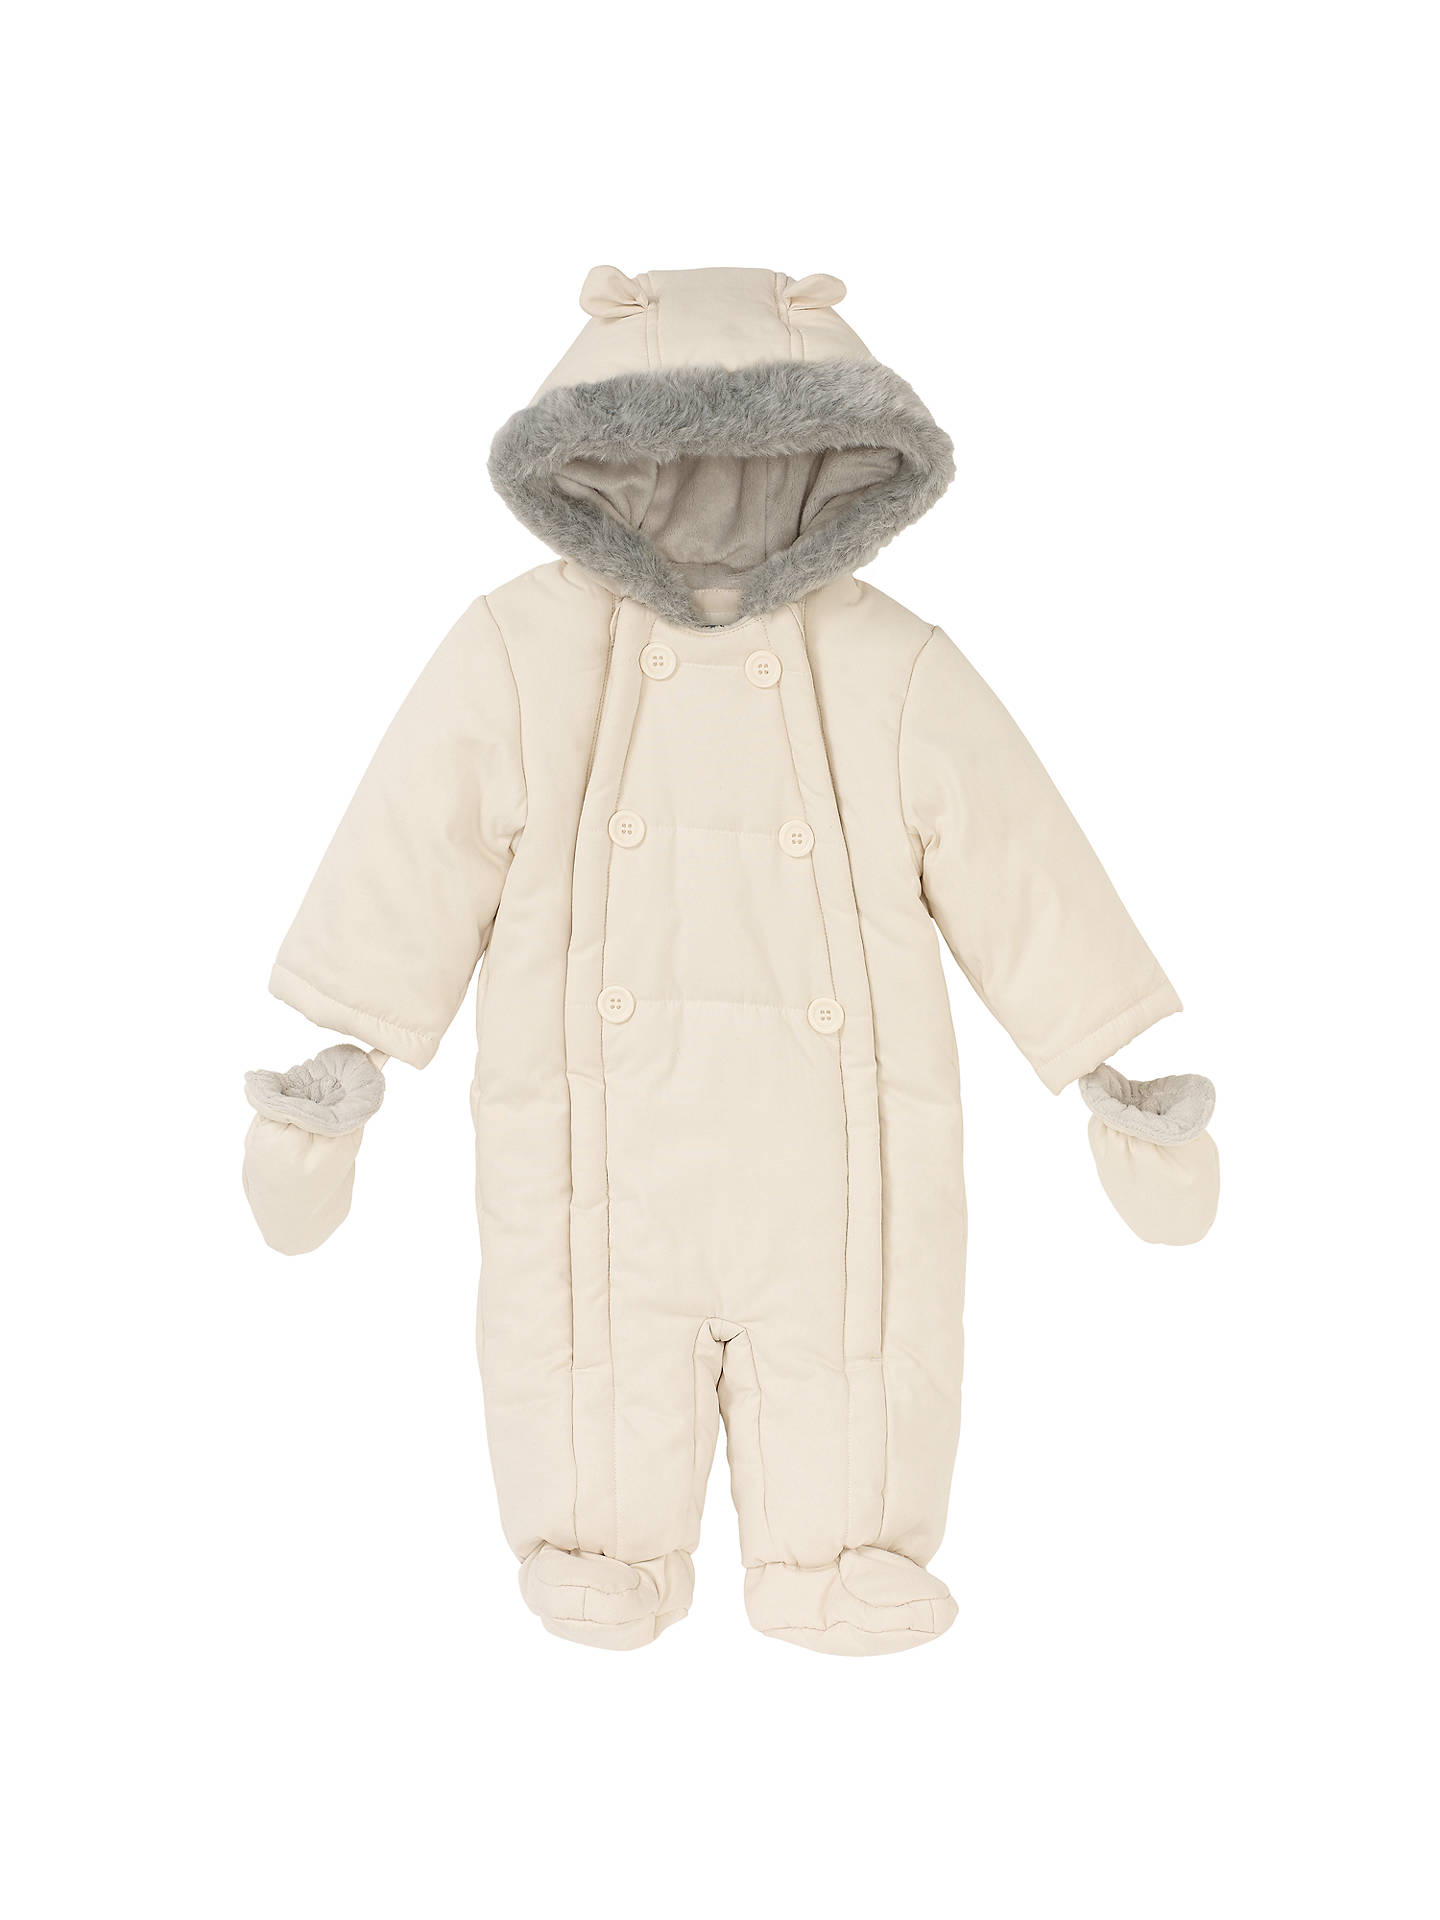 Buy John Lewis & Partners Baby Wadded Snowsuit, Off White, Newborn Online at johnlewis.com